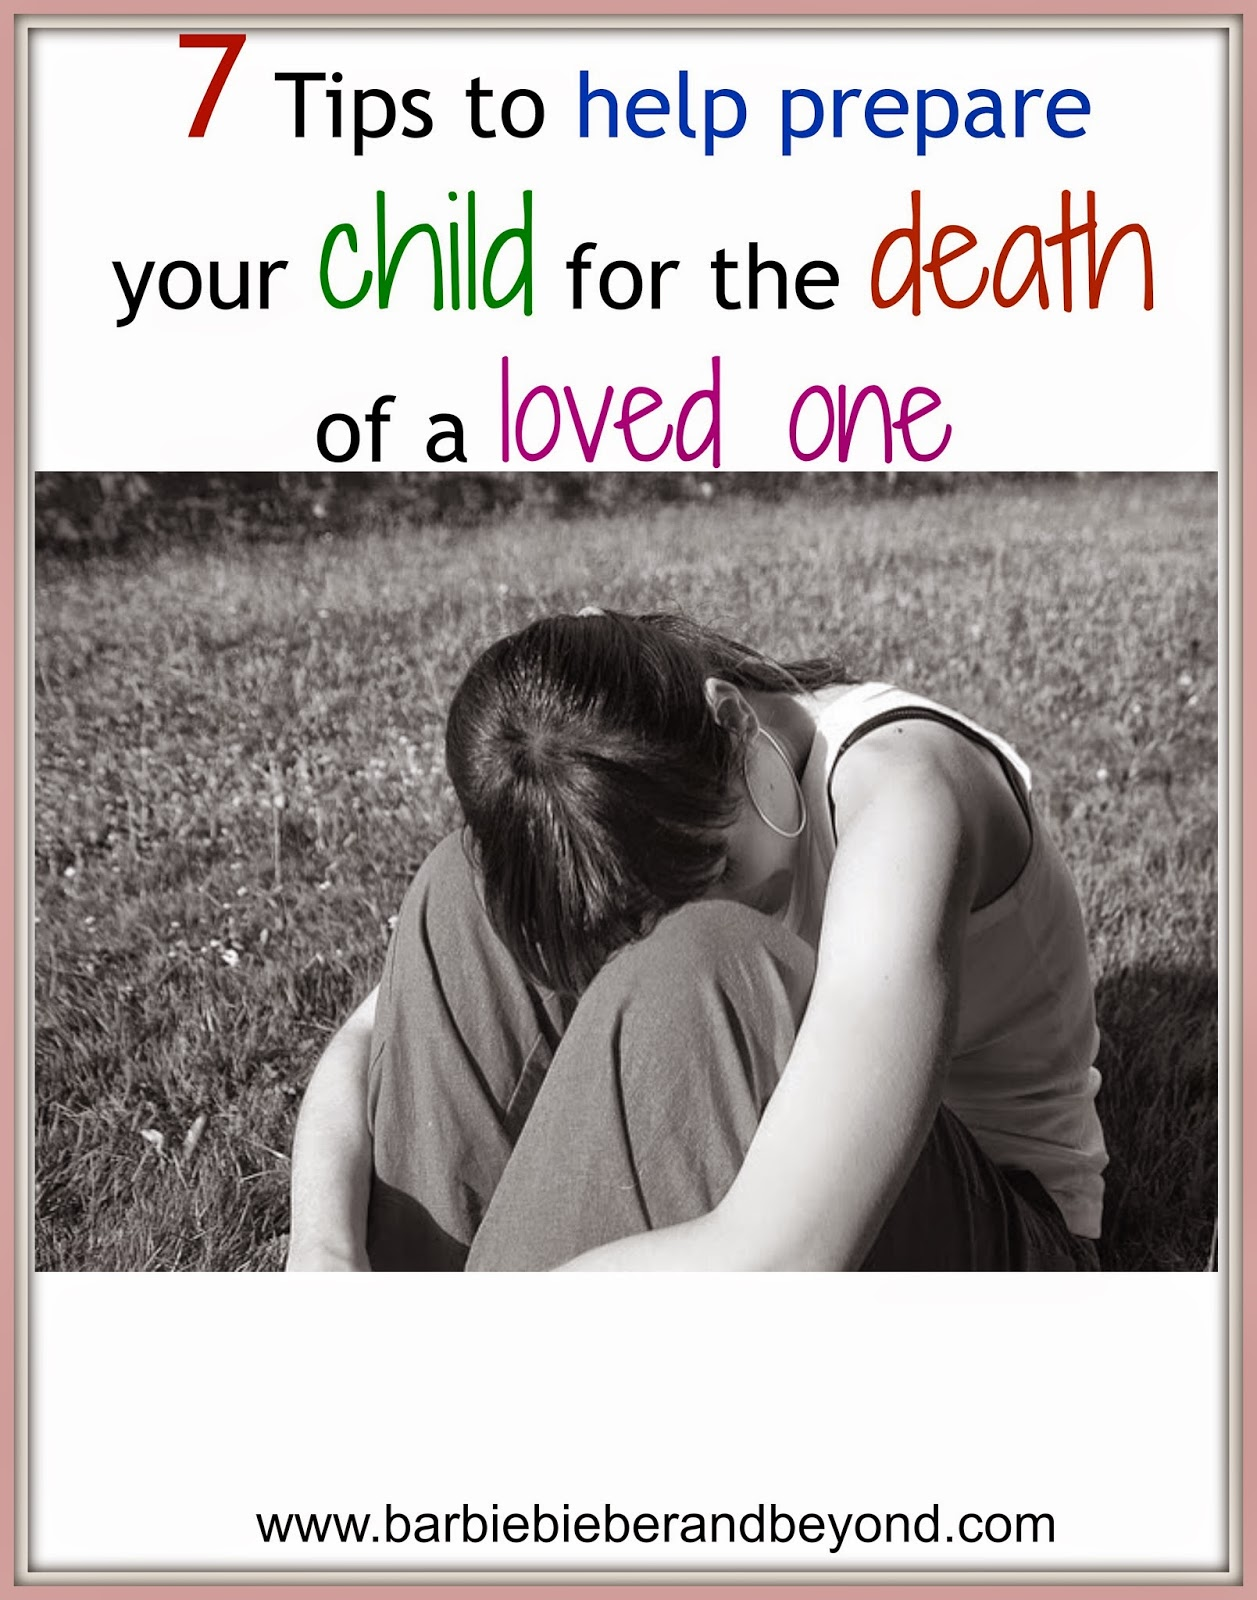 Help your child cope with death